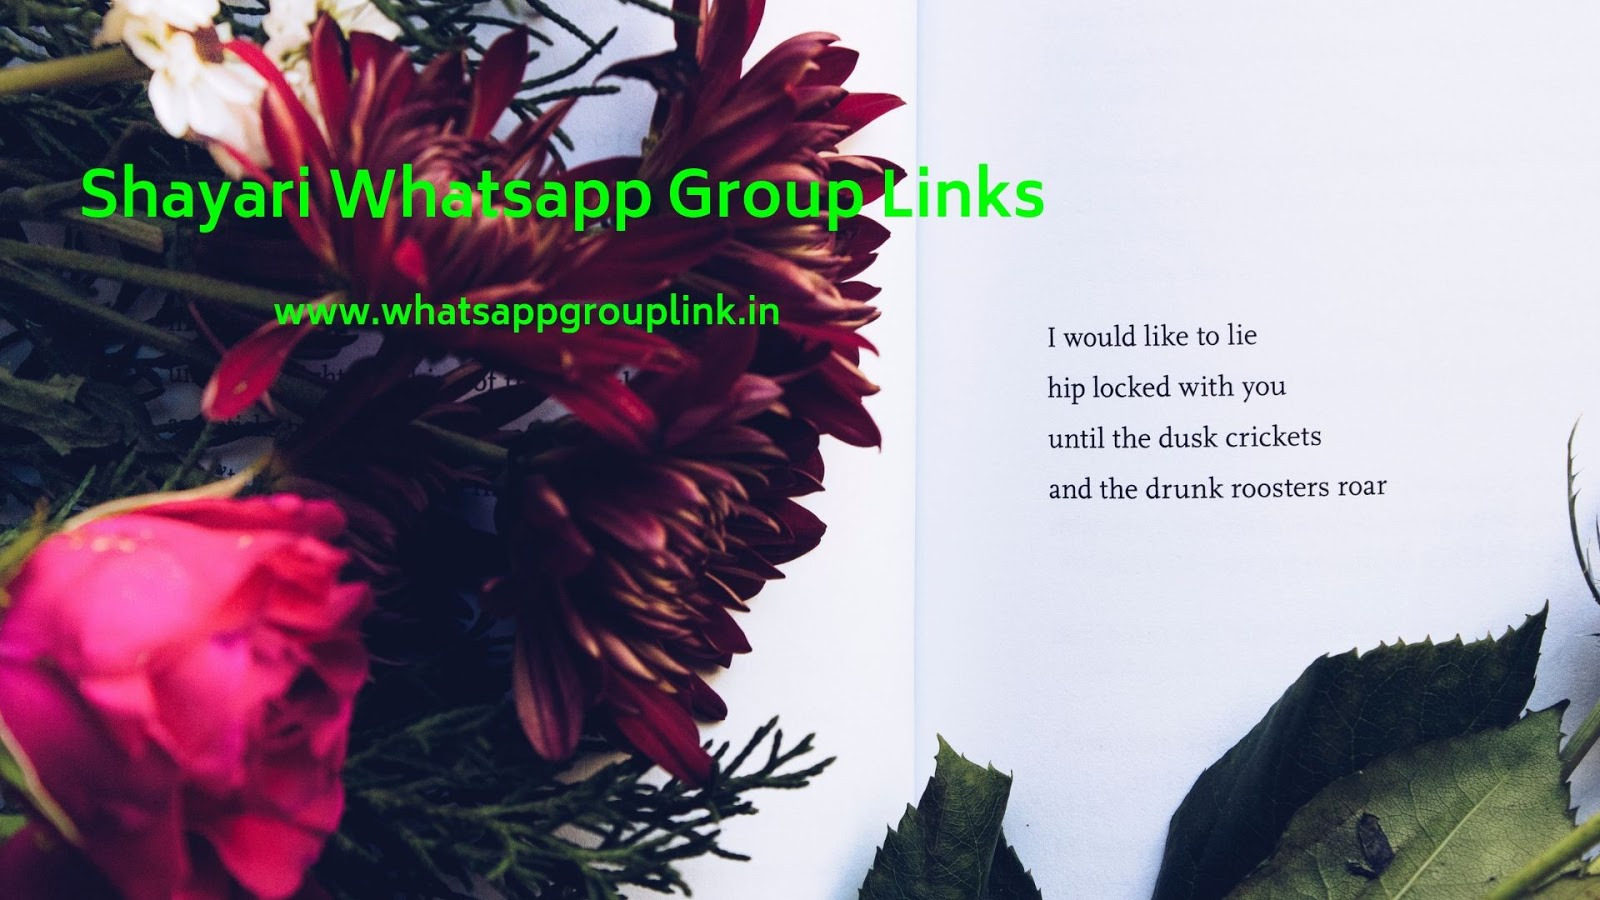 Whatsapp Group Link: Shayari Whatsapp Group Links